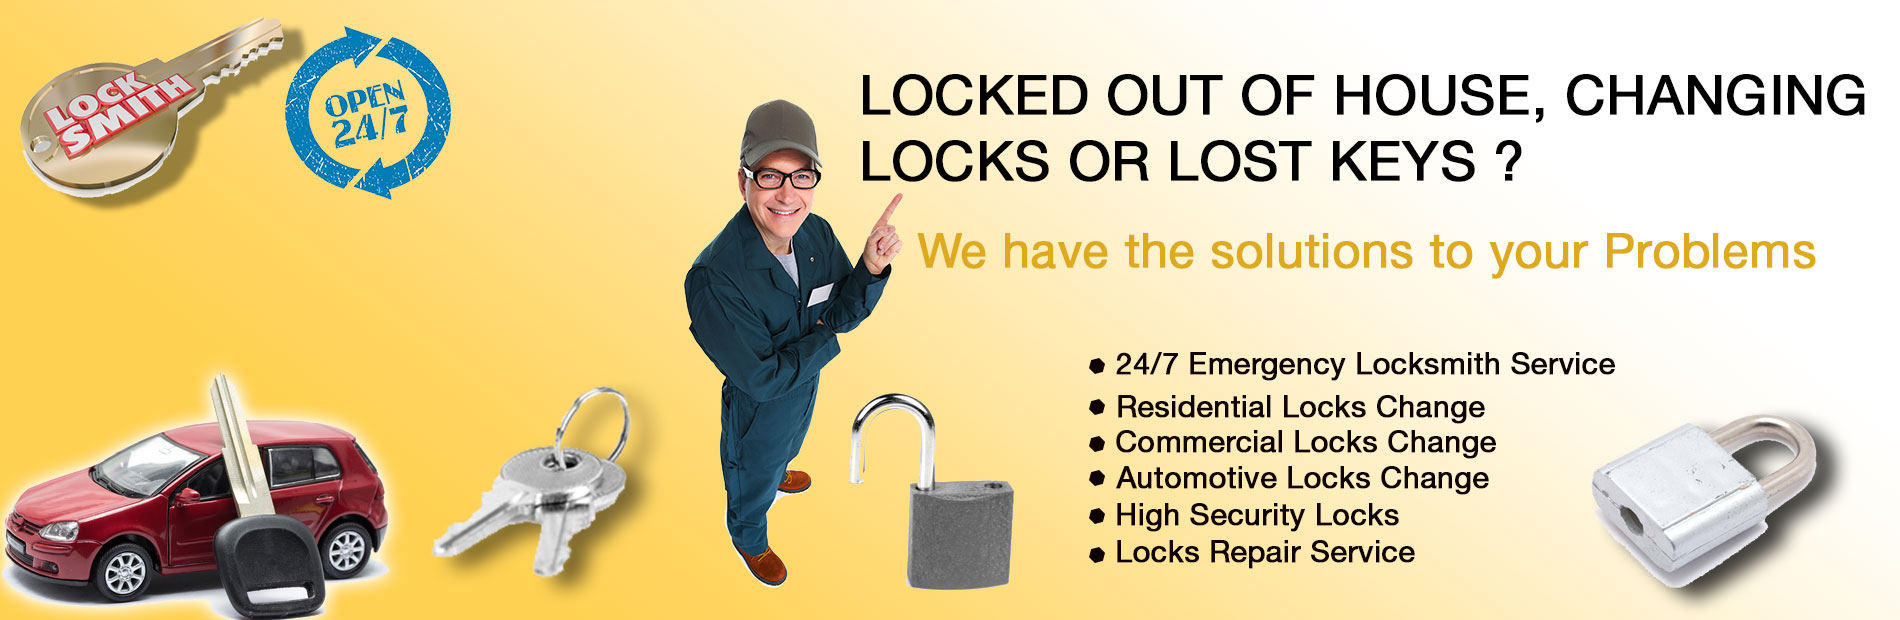 Bothell Locksmith Store Bothell, WA 425-201-4129